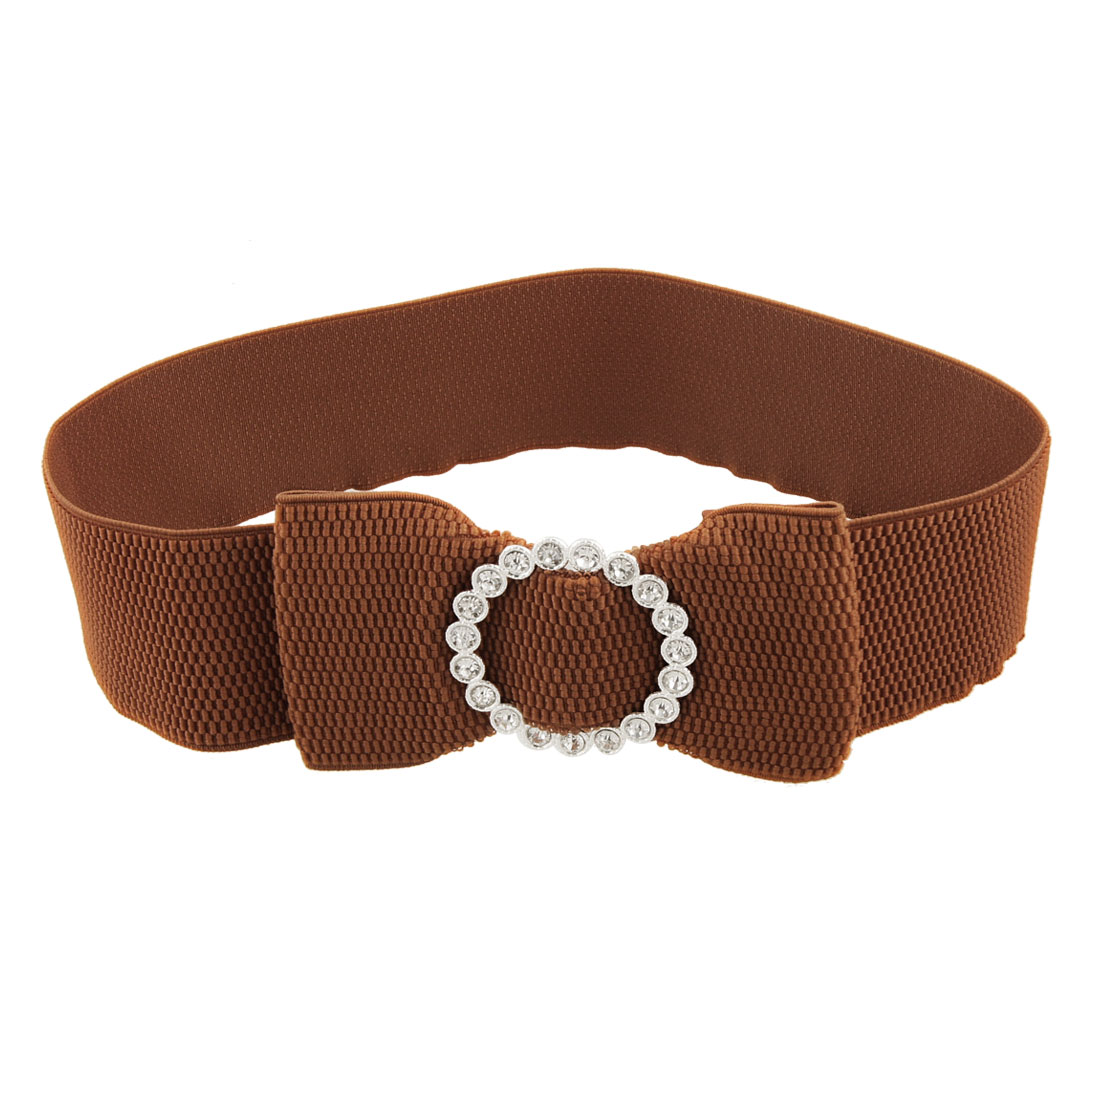 Rhinestone Accent Bowknot Brown Wide Stretchy Belt for Ladies